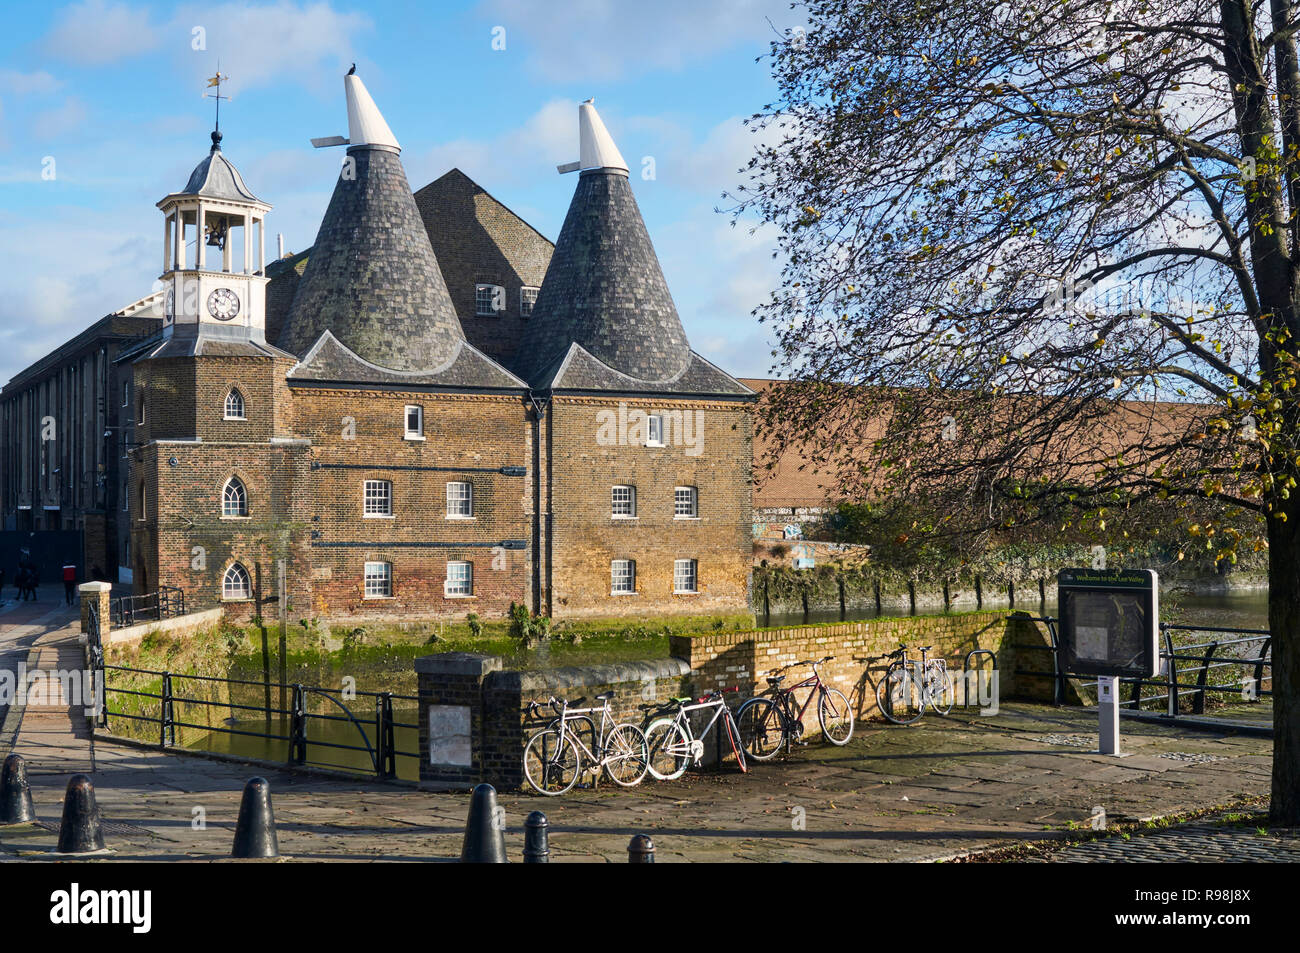 The historic Three Mills Studios at Bromley-By-Bow, East London UK, on the River Lea - Stock Image